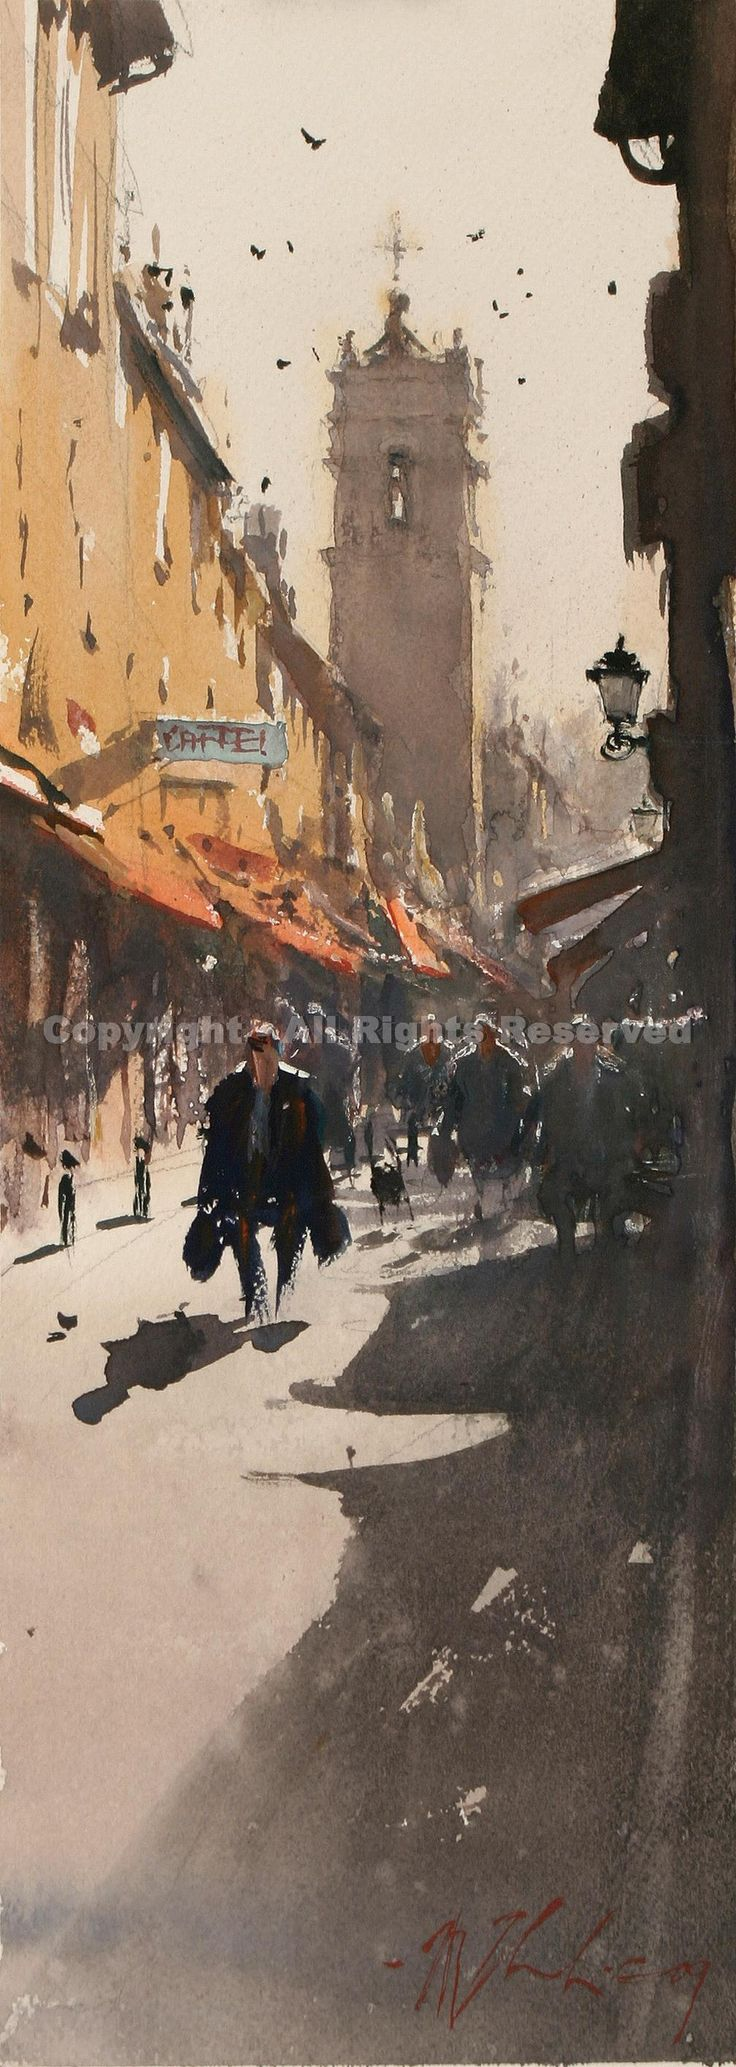 Watercolor artist magazine customer service - Find This Pin And More On Great Artists